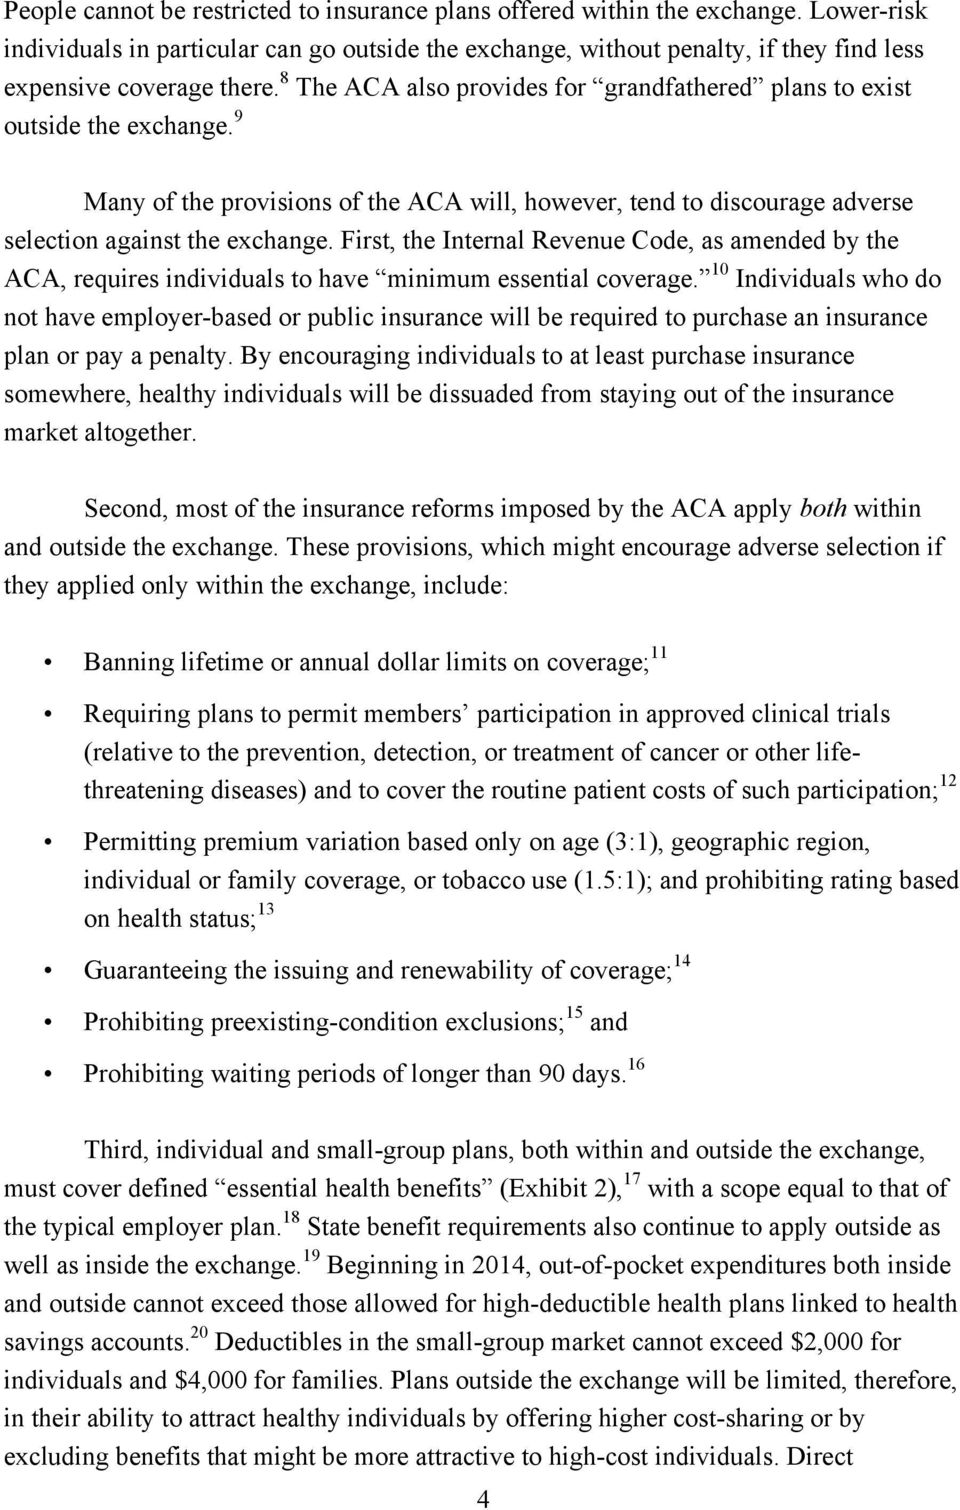 8 The ACA also provides for grandfathered plans to exist outside the exchange. 9 Many of the provisions of the ACA will, however, tend to discourage adverse selection against the exchange.